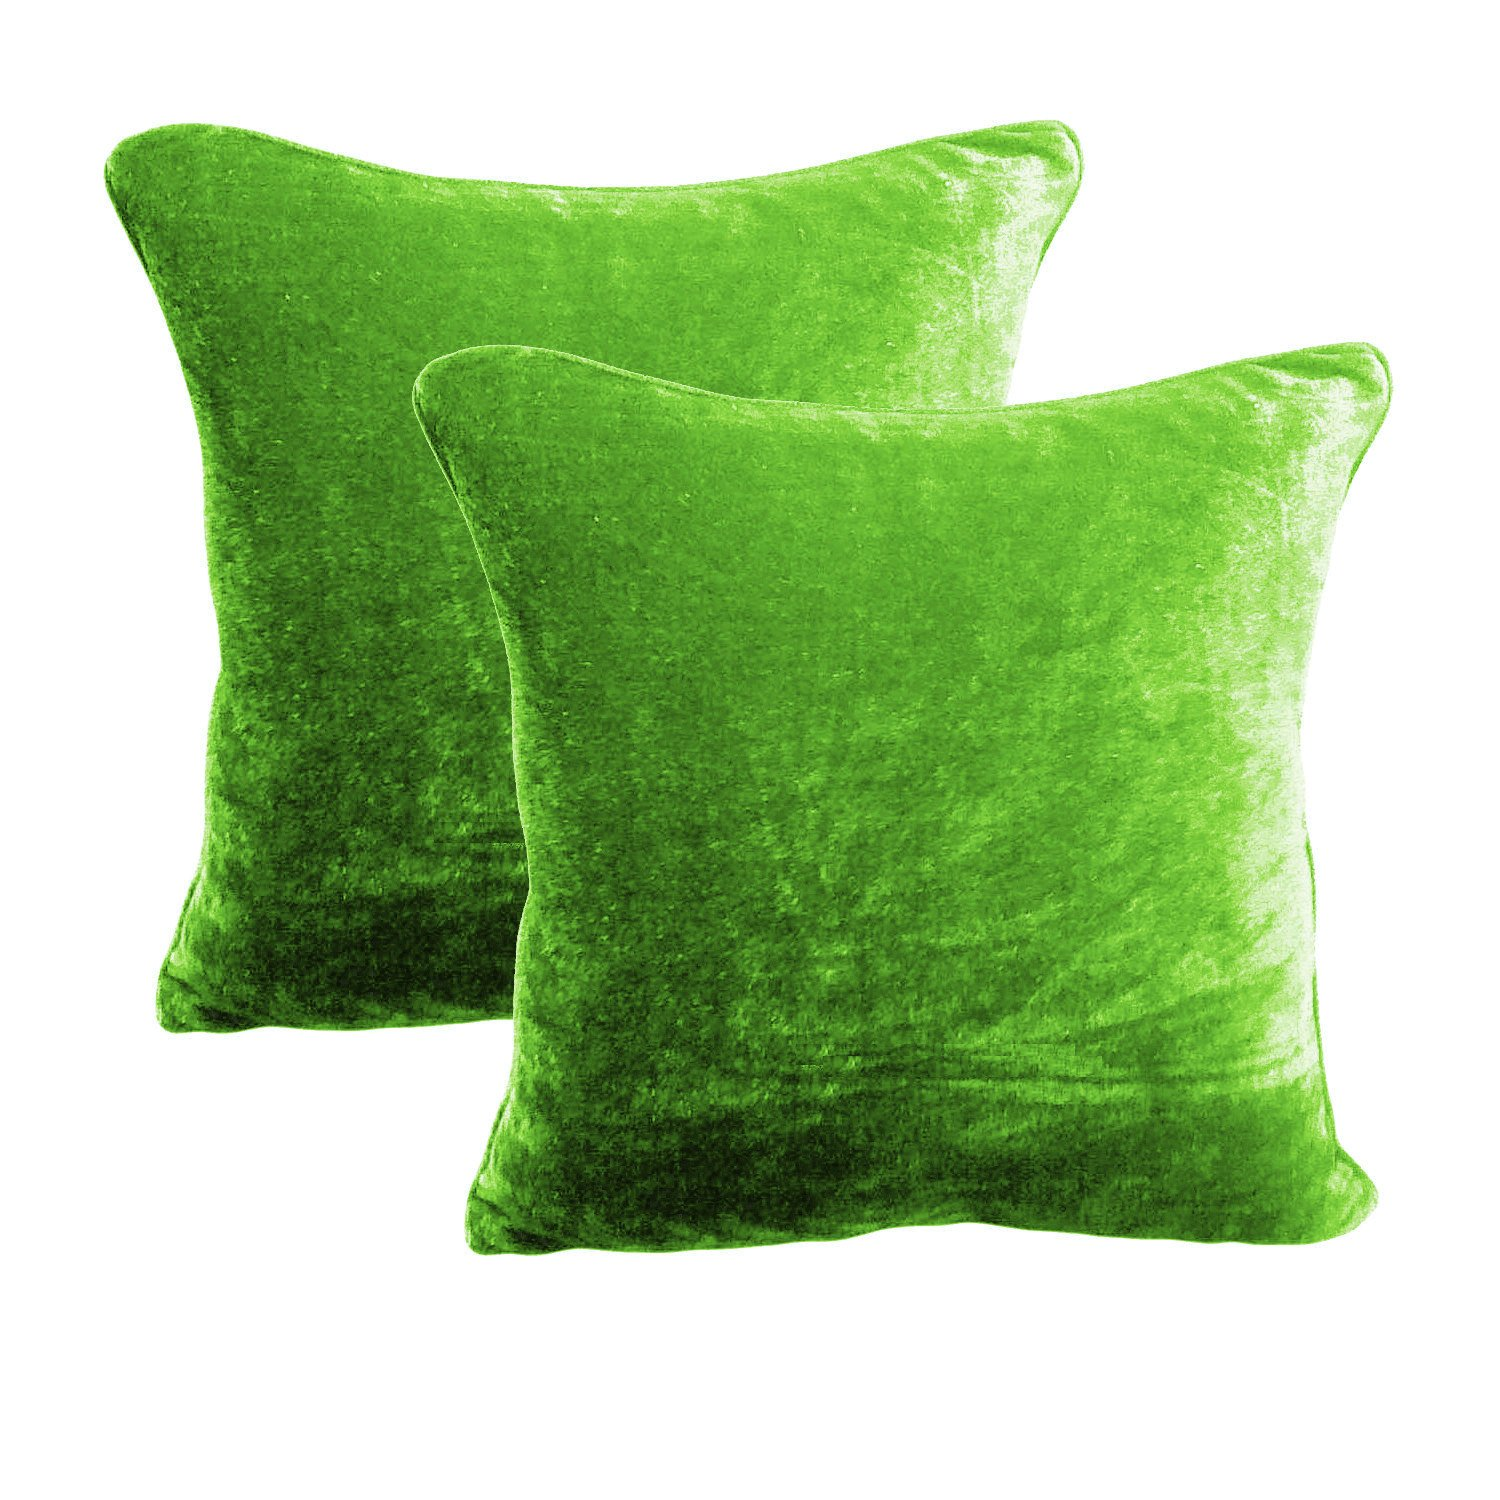 20 by 30 INCHES - 100% COTTON VELVET PILLOW COVERS FOR BEDROOM SAGE GREEN